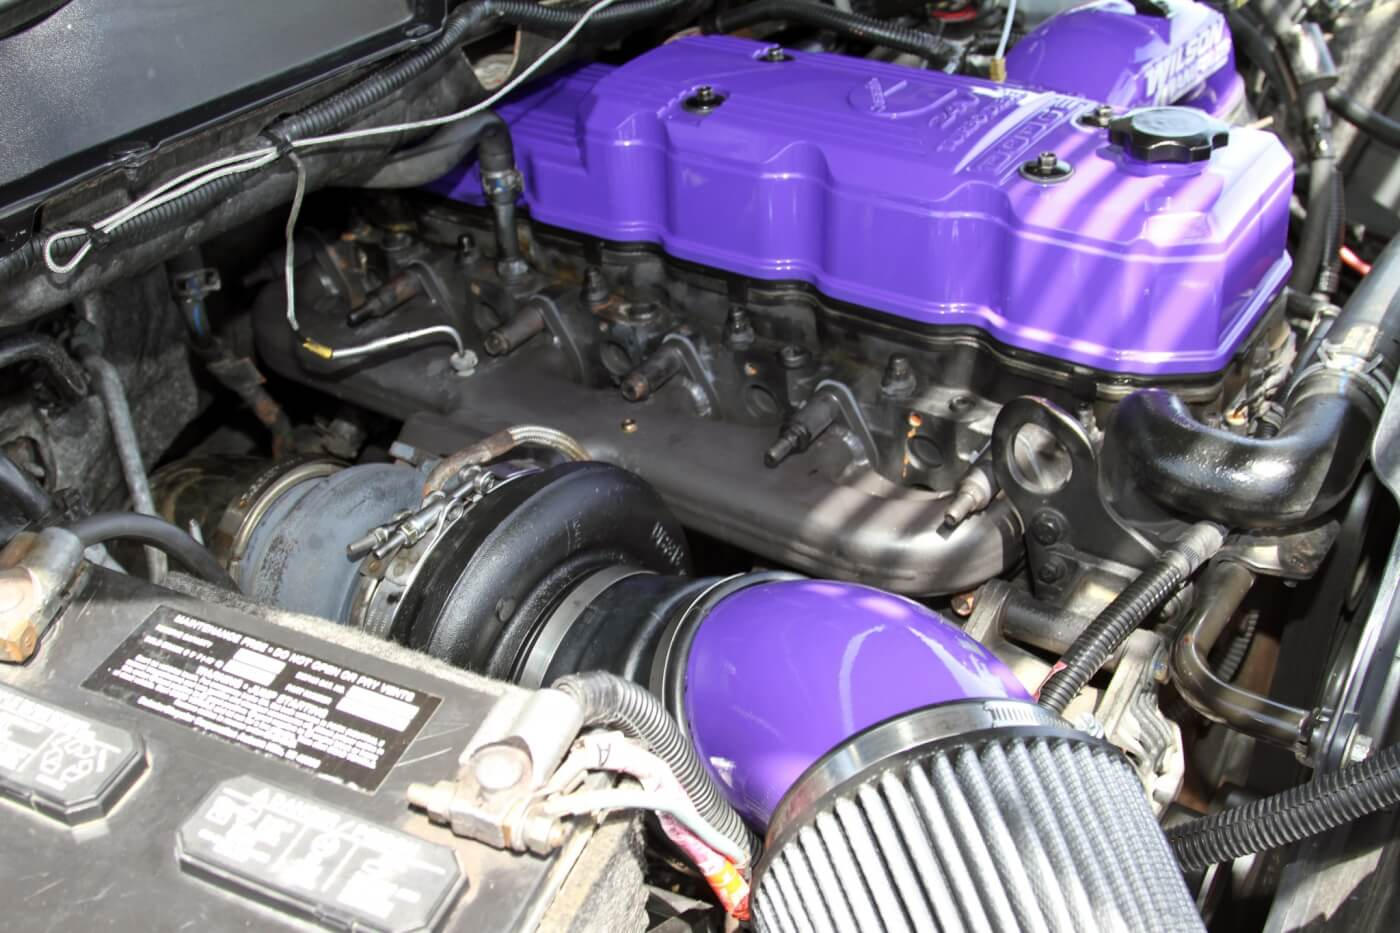 The passenger side of the 5.9L Cummins is dominated by a Steed Speed manifold and a Fleece Performance Engineering S468 turbocharger.